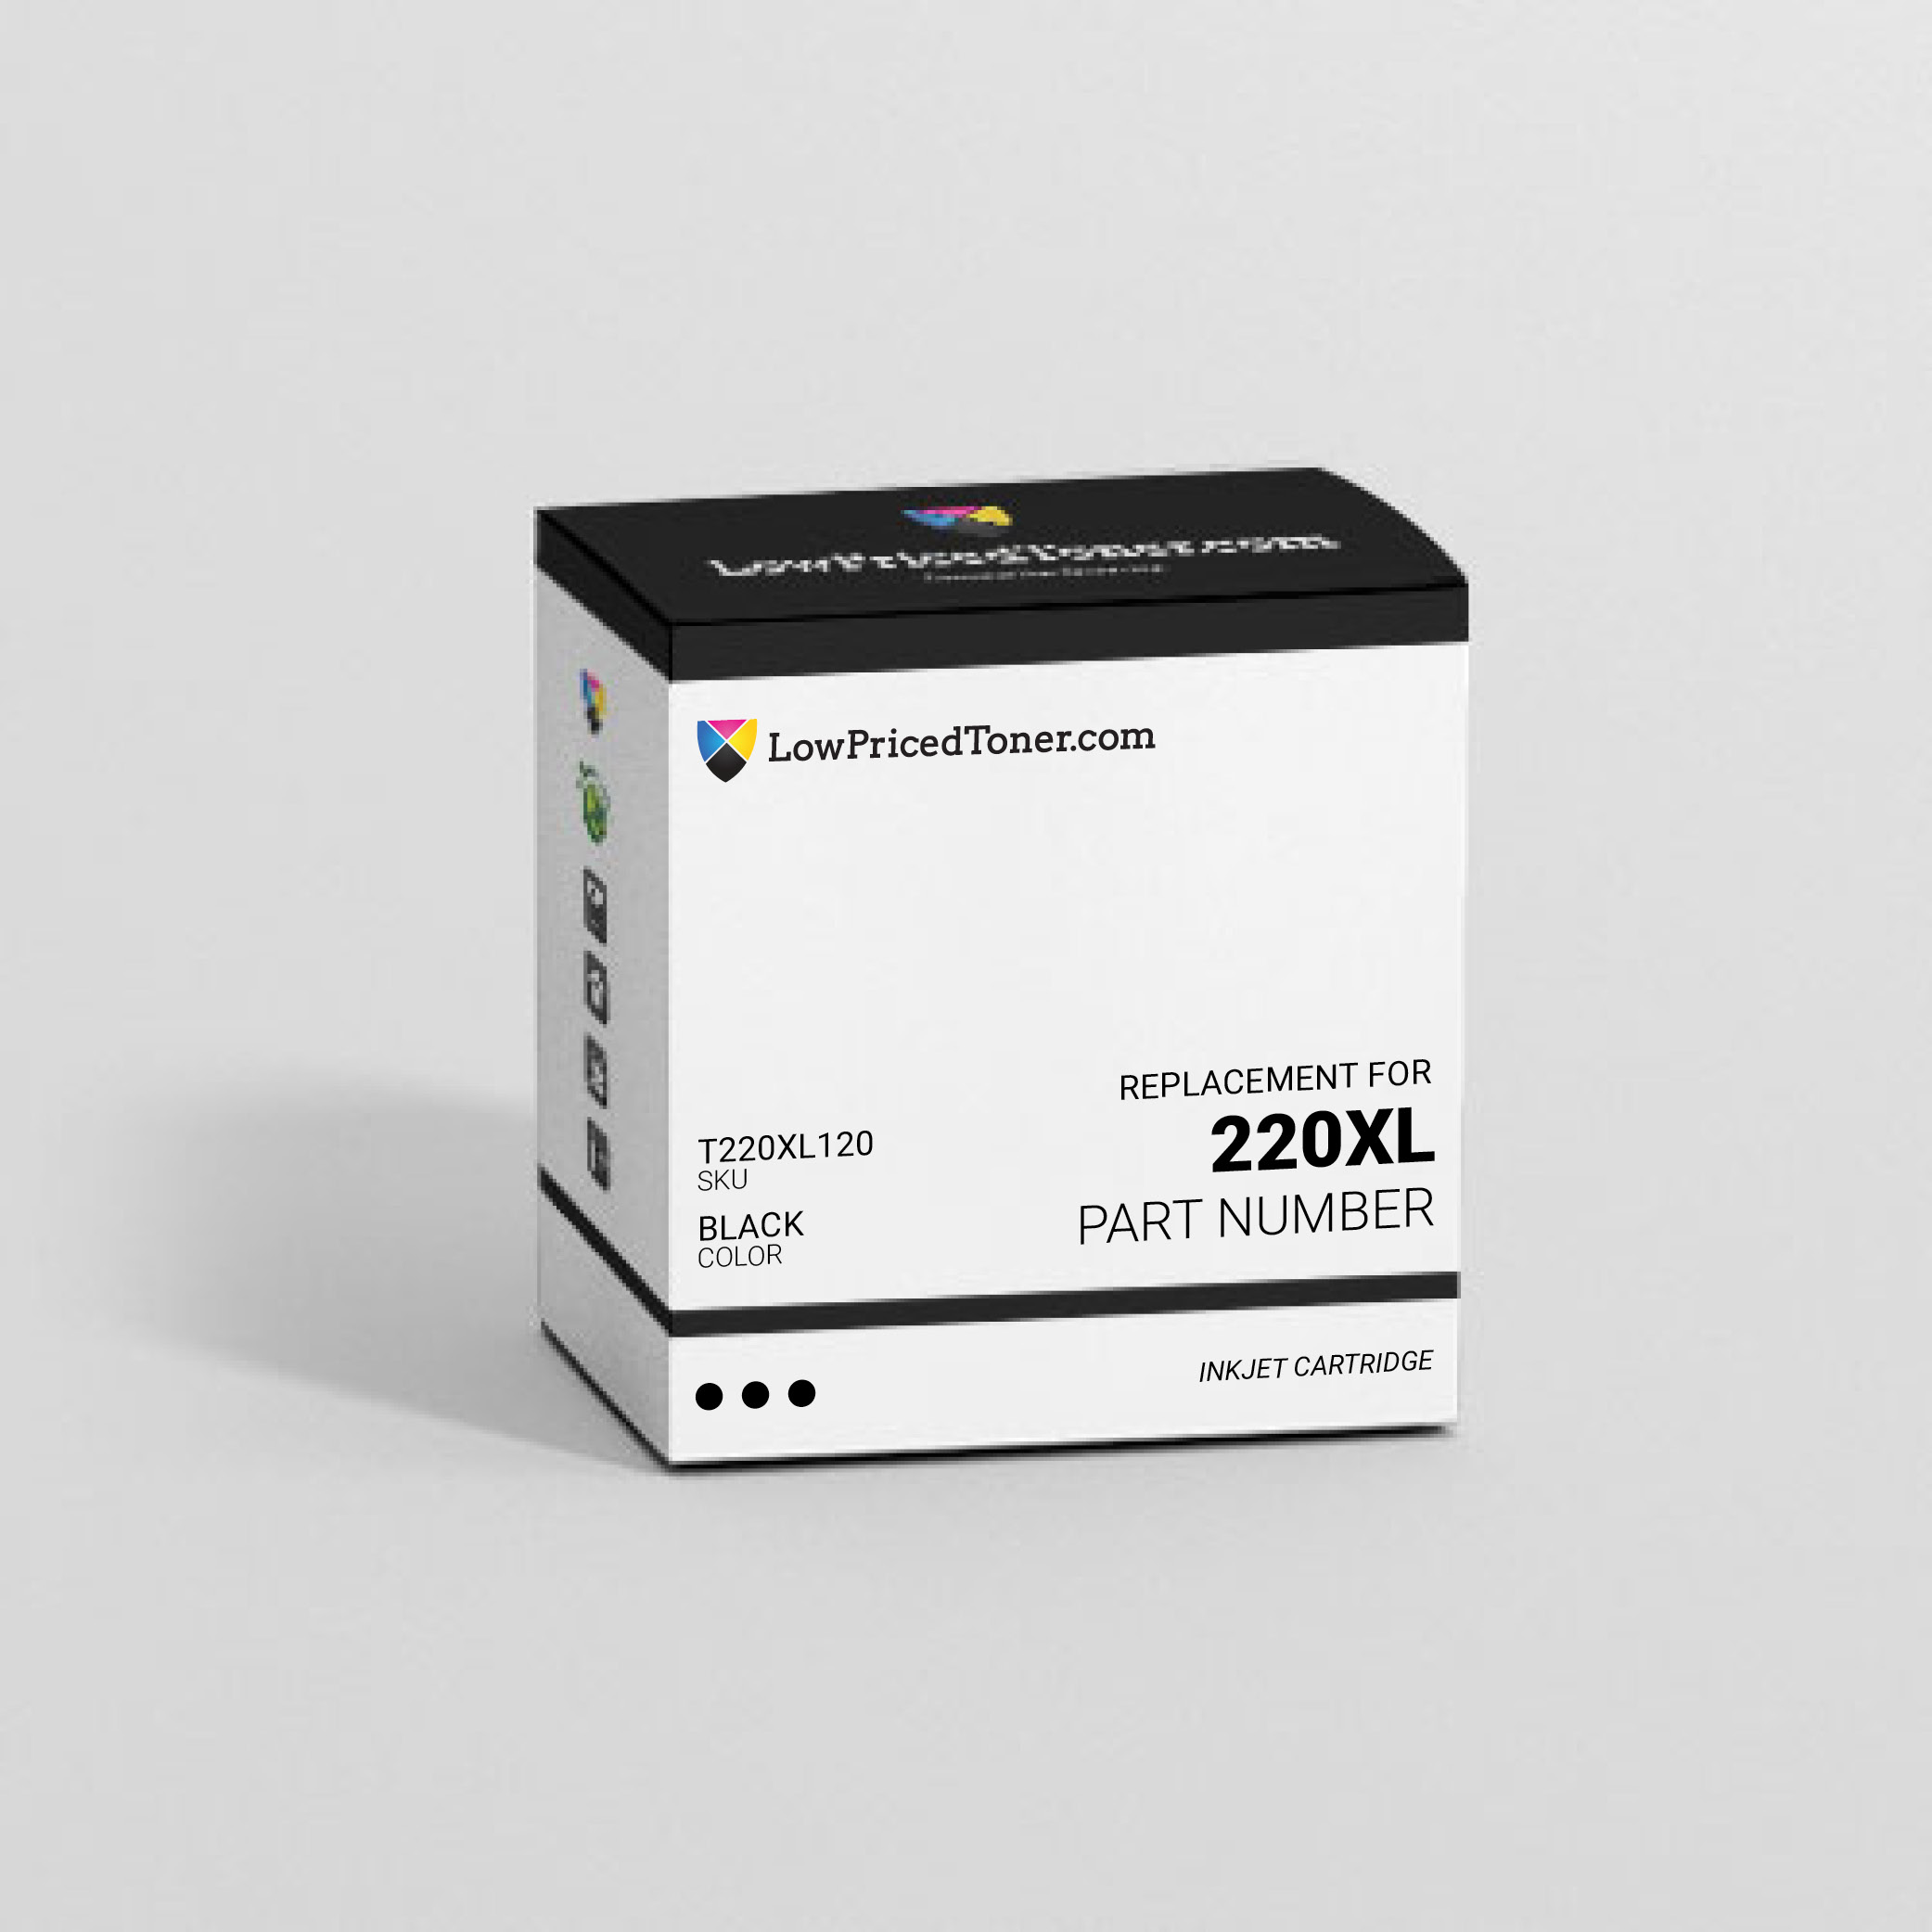 Epson T220XL120 220XL Remanufactured Black Ink Cartridge High Yield